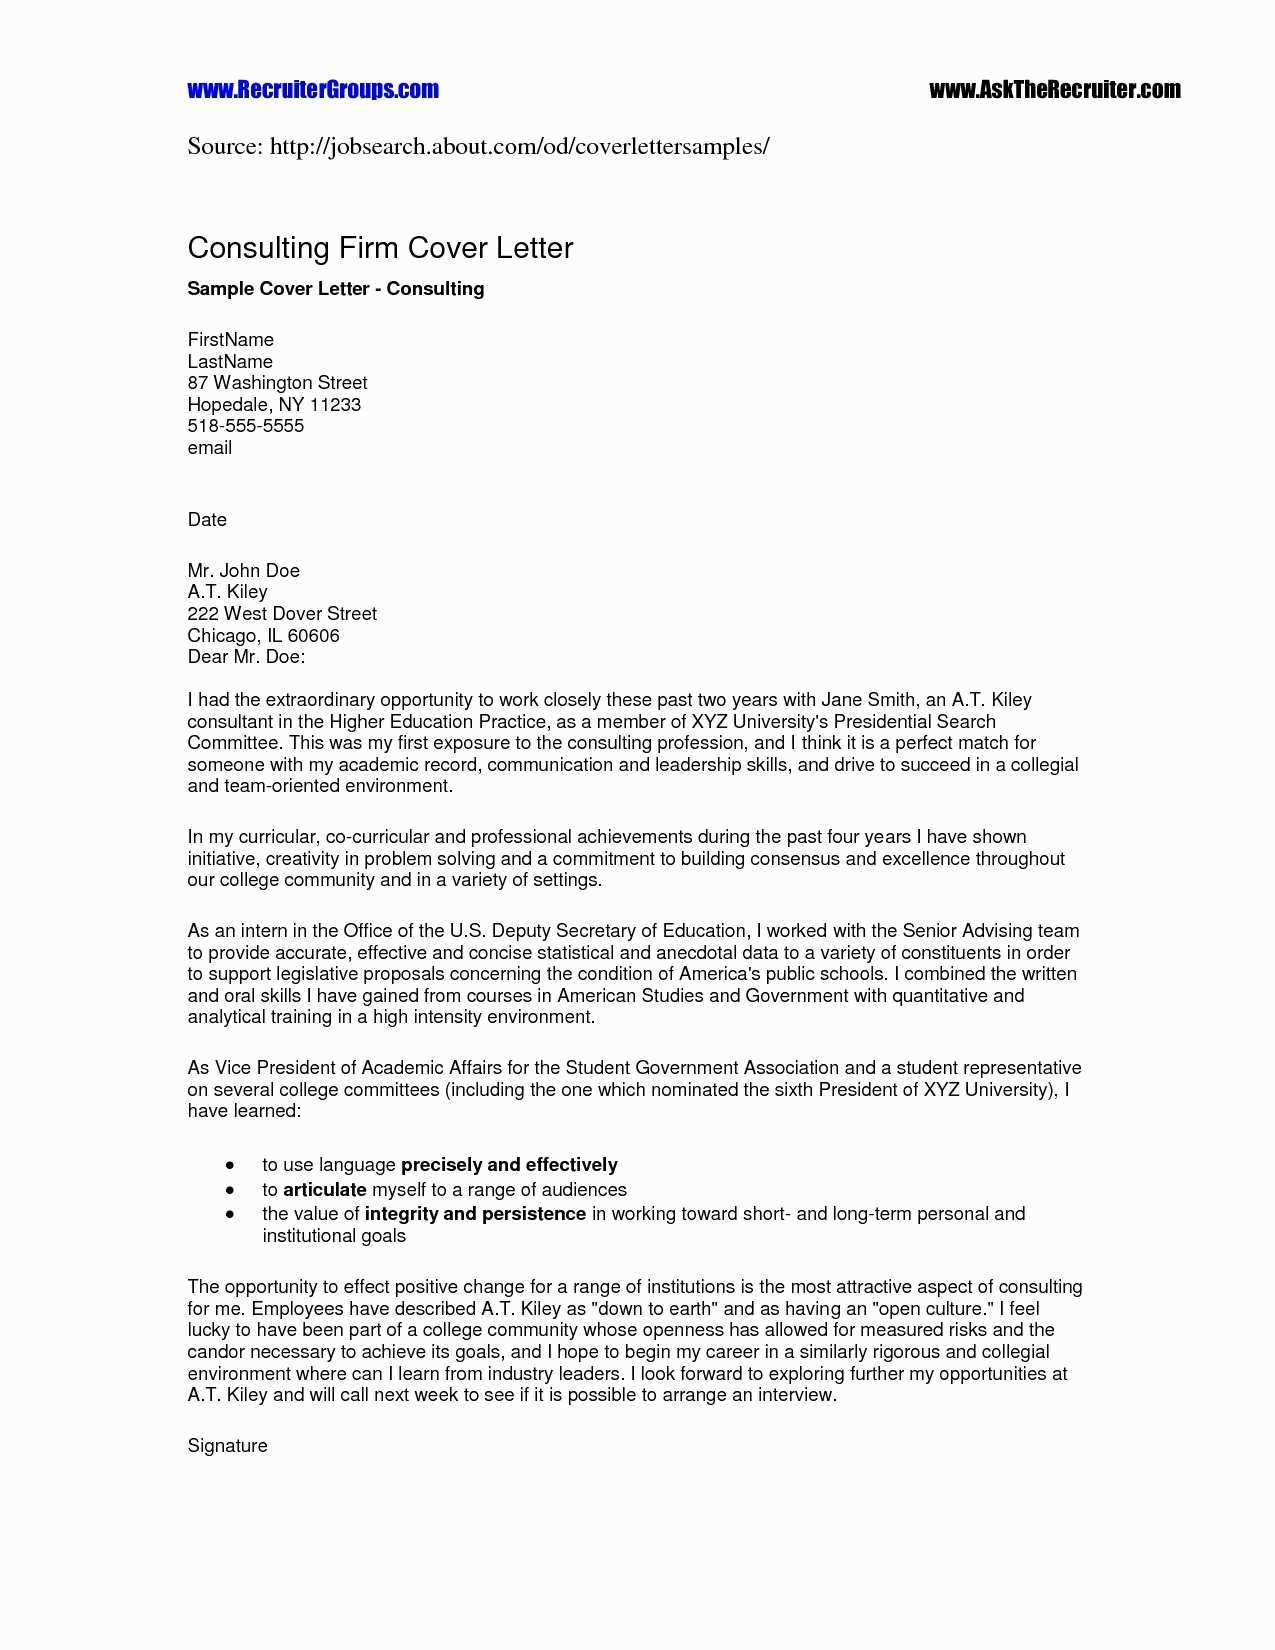 Repayment Agreement Letter Template - Legal Document for Payment Agreement New Legal Agreement Between Two